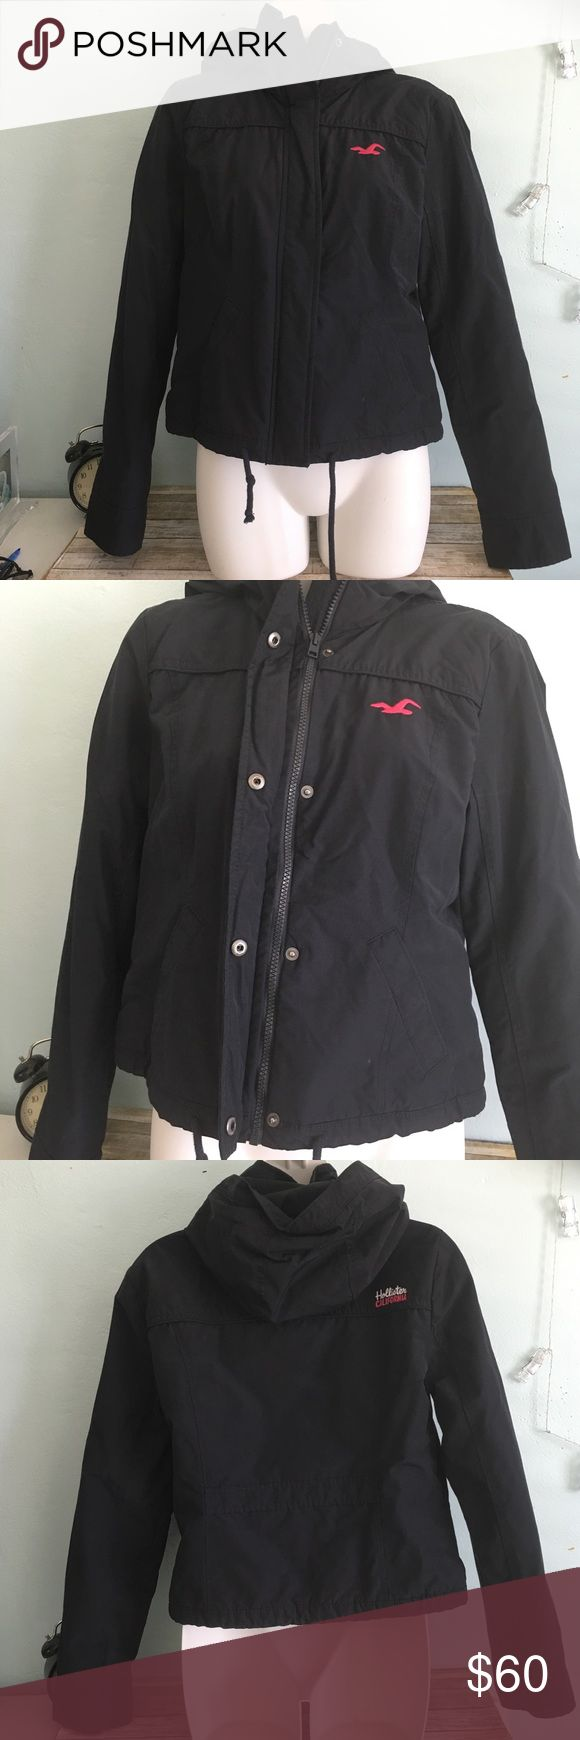 Hollister Jacket Size M Hollister Jacket Size M. Wore once, great for rain. Feel free to ask any questions. :) Hollister Jackets & Coats